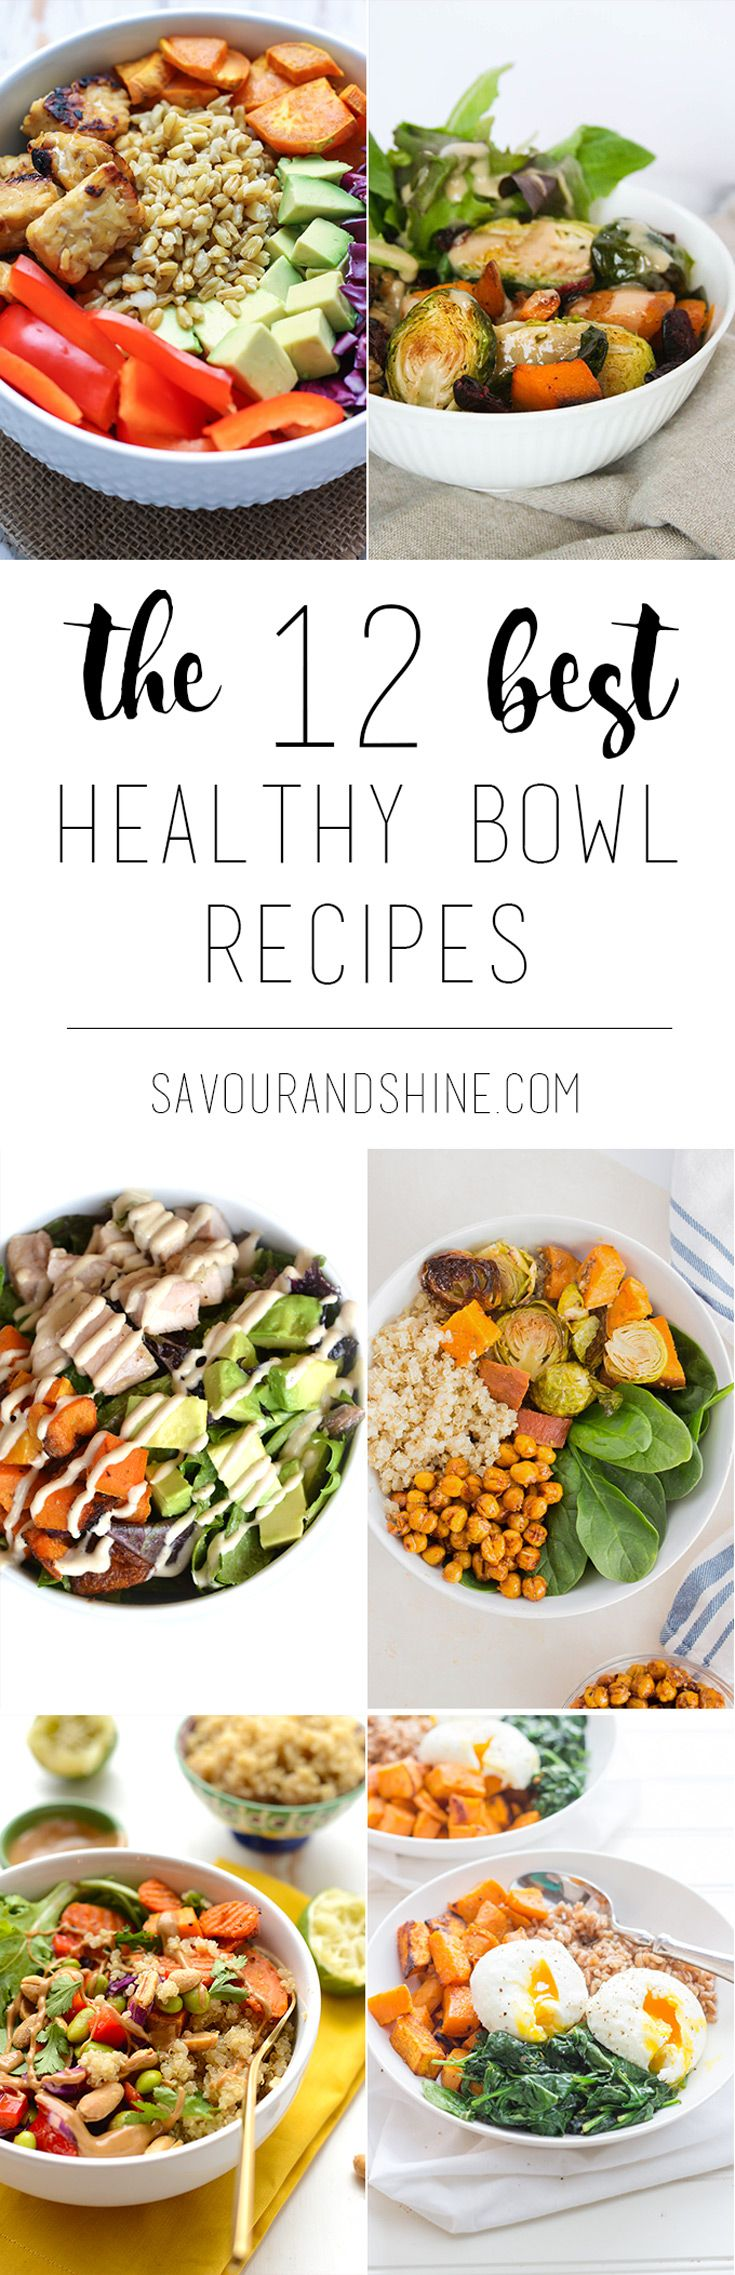 My favourite one-bowl meals that are healthy, easy, and so delicious! Let these recipes inspire you to create your own for